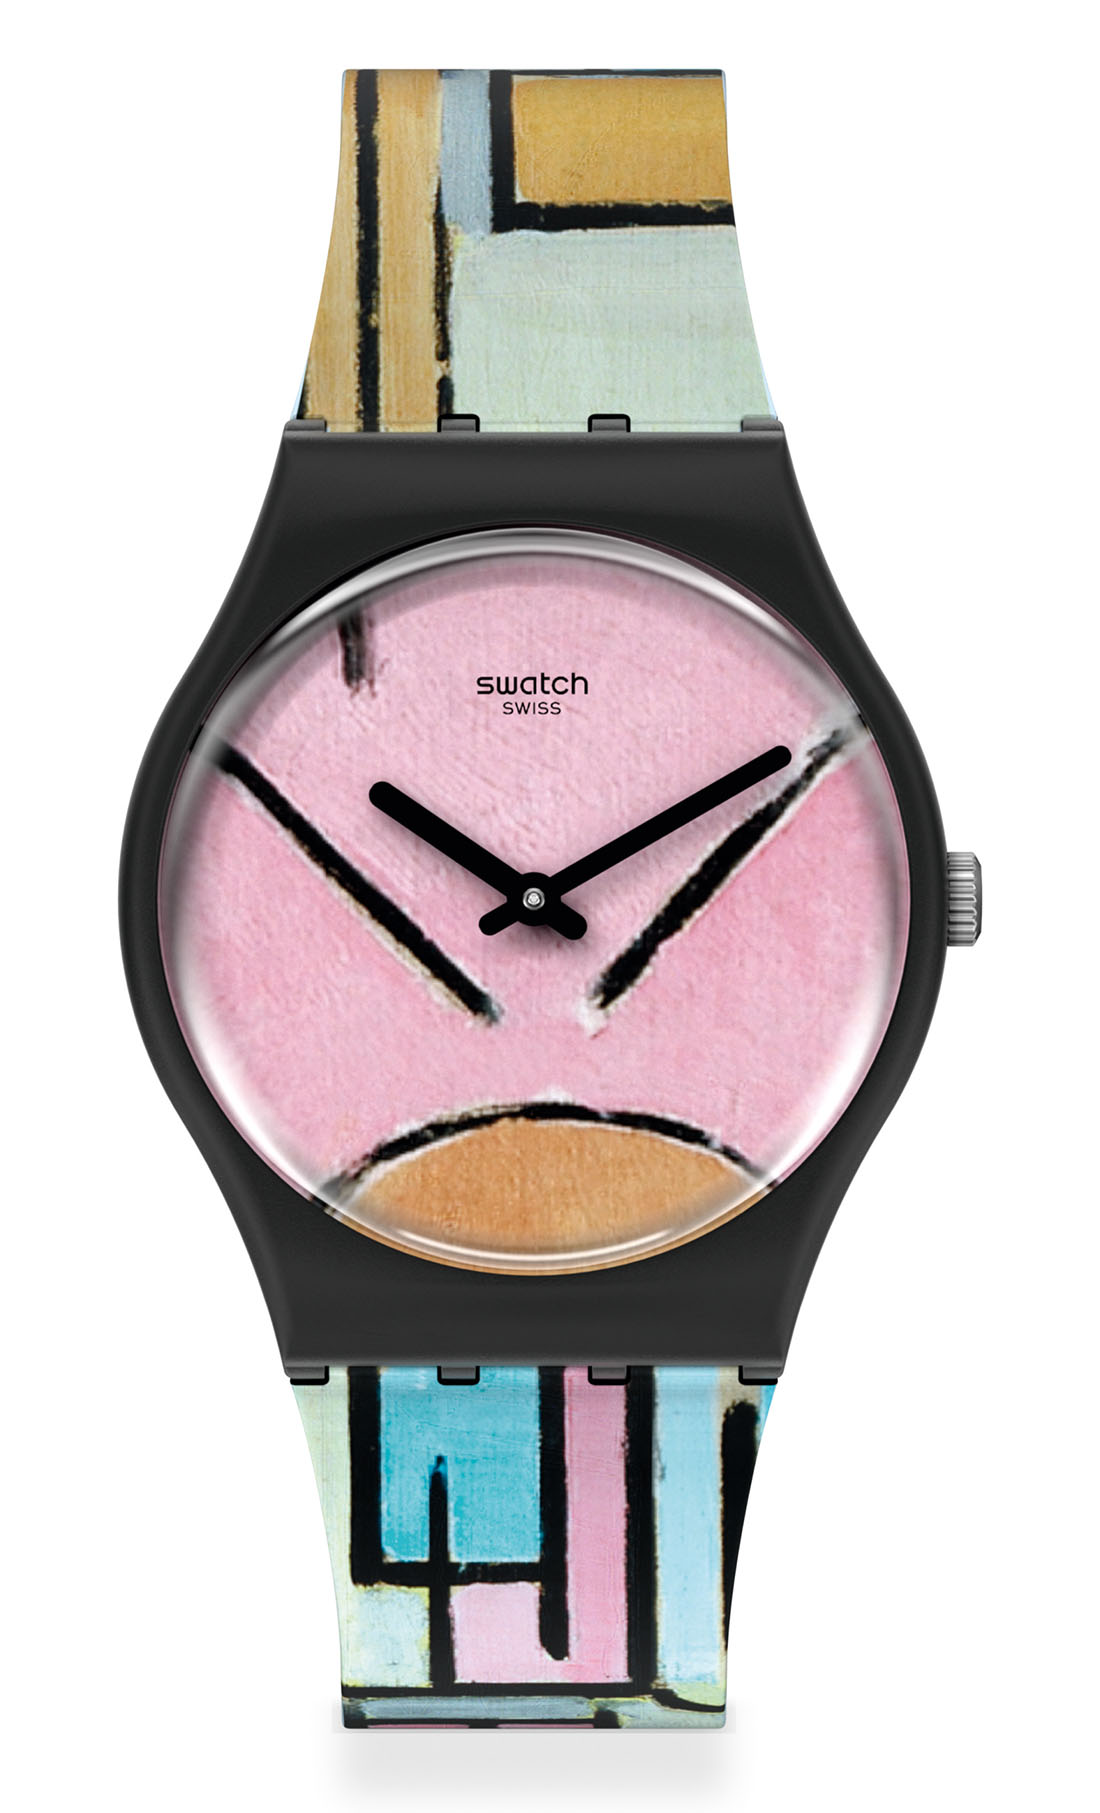 Swatch x MoMA New York - Composition in Oval with Color Planes 1